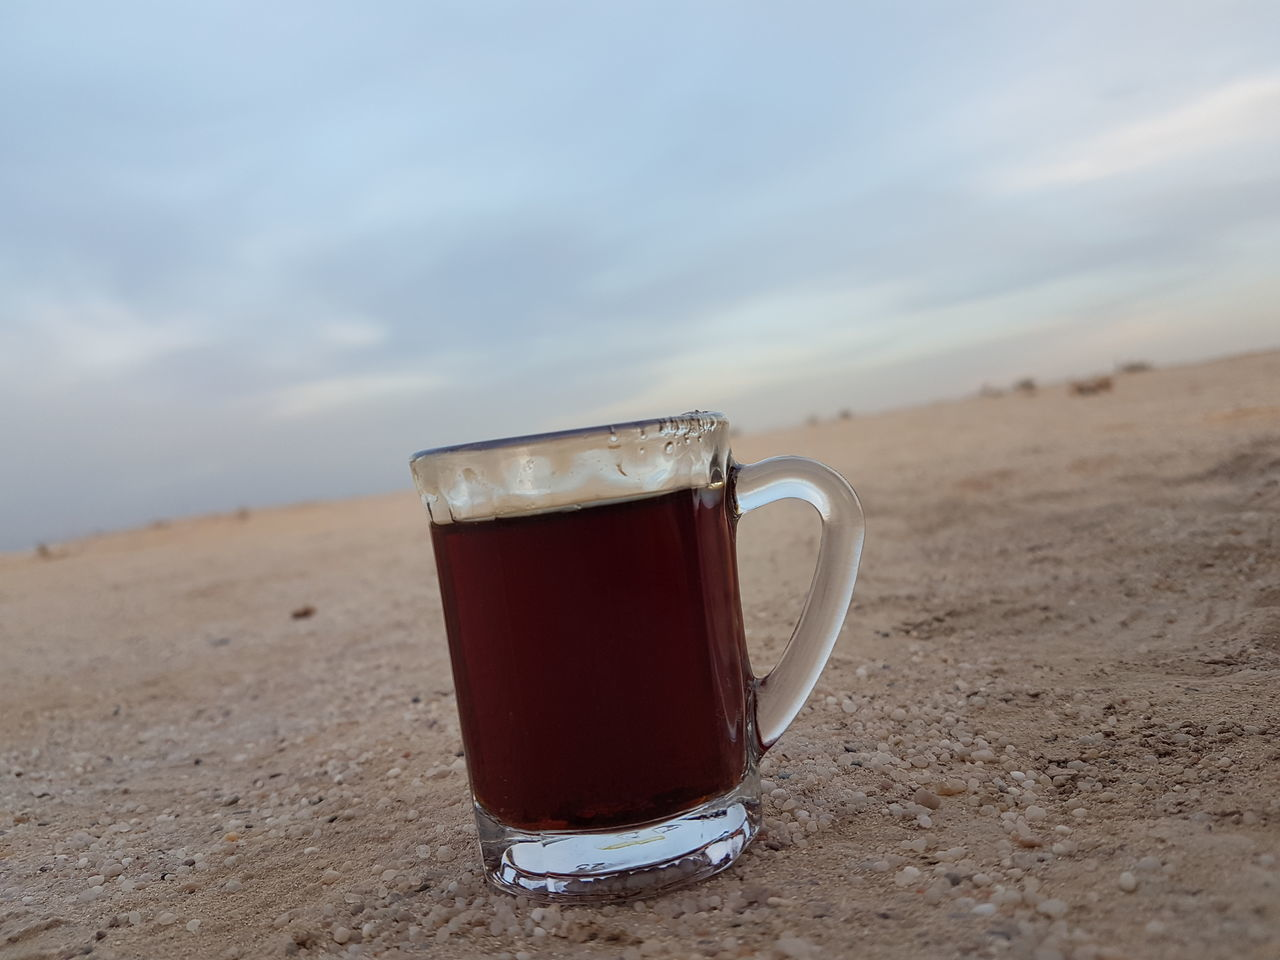 drink, no people, refreshment, food and drink, drinking glass, freshness, day, sky, nature, close-up, frothy drink, indoors